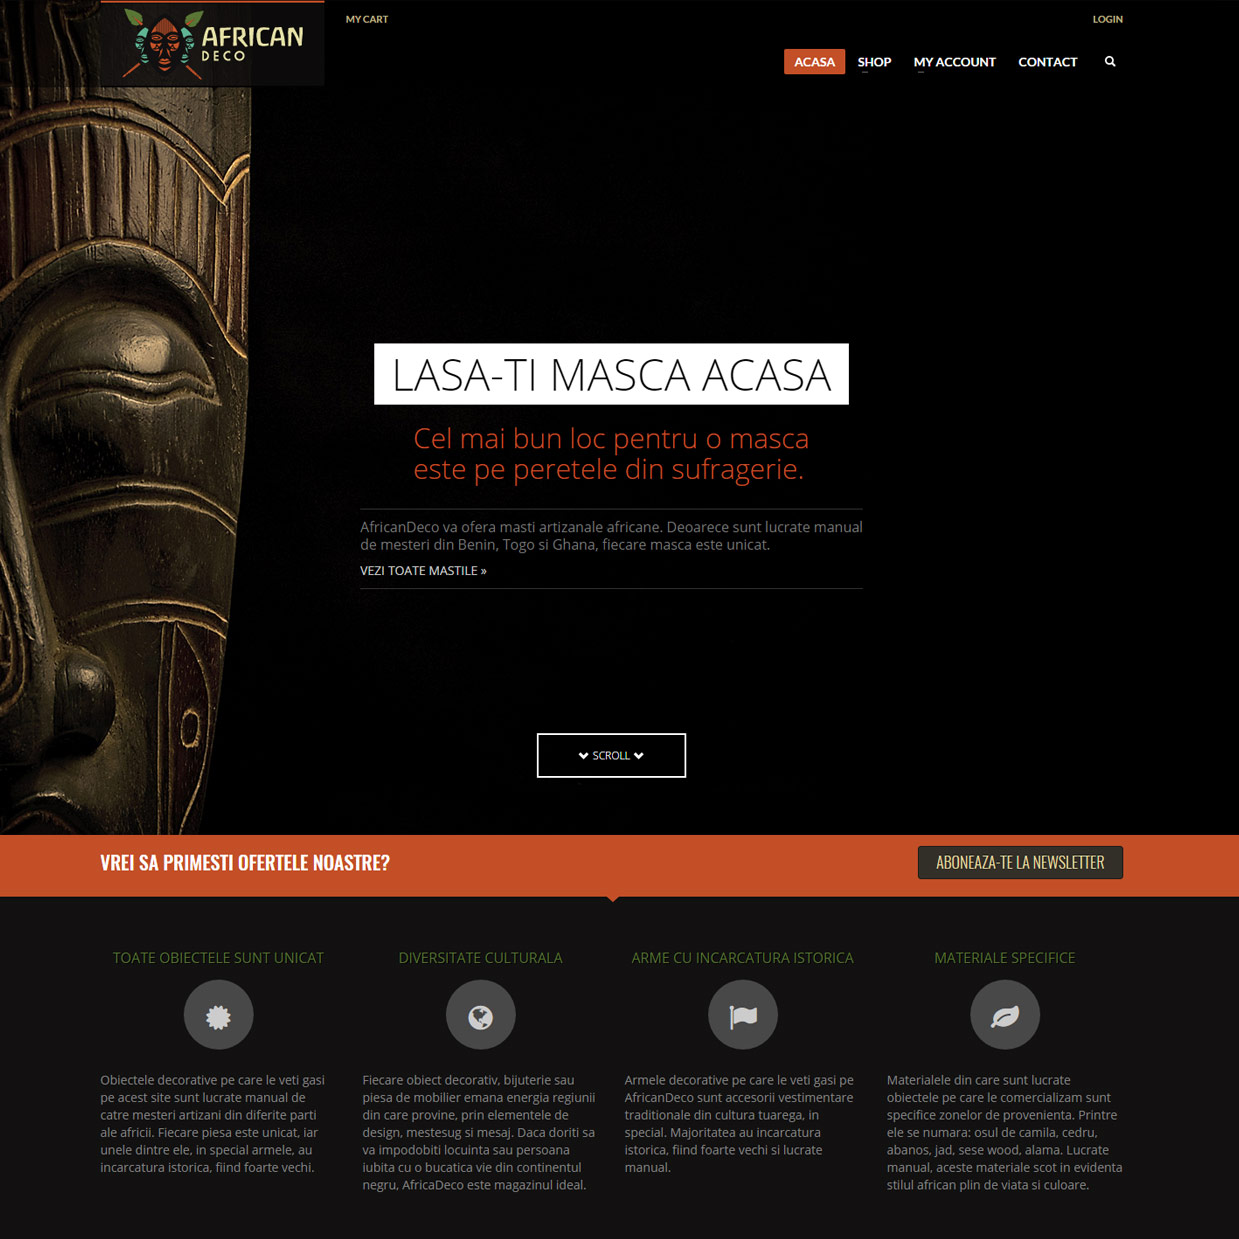 WooCommerce Wordpress online shop selling handcrafted african jewelry and decoration